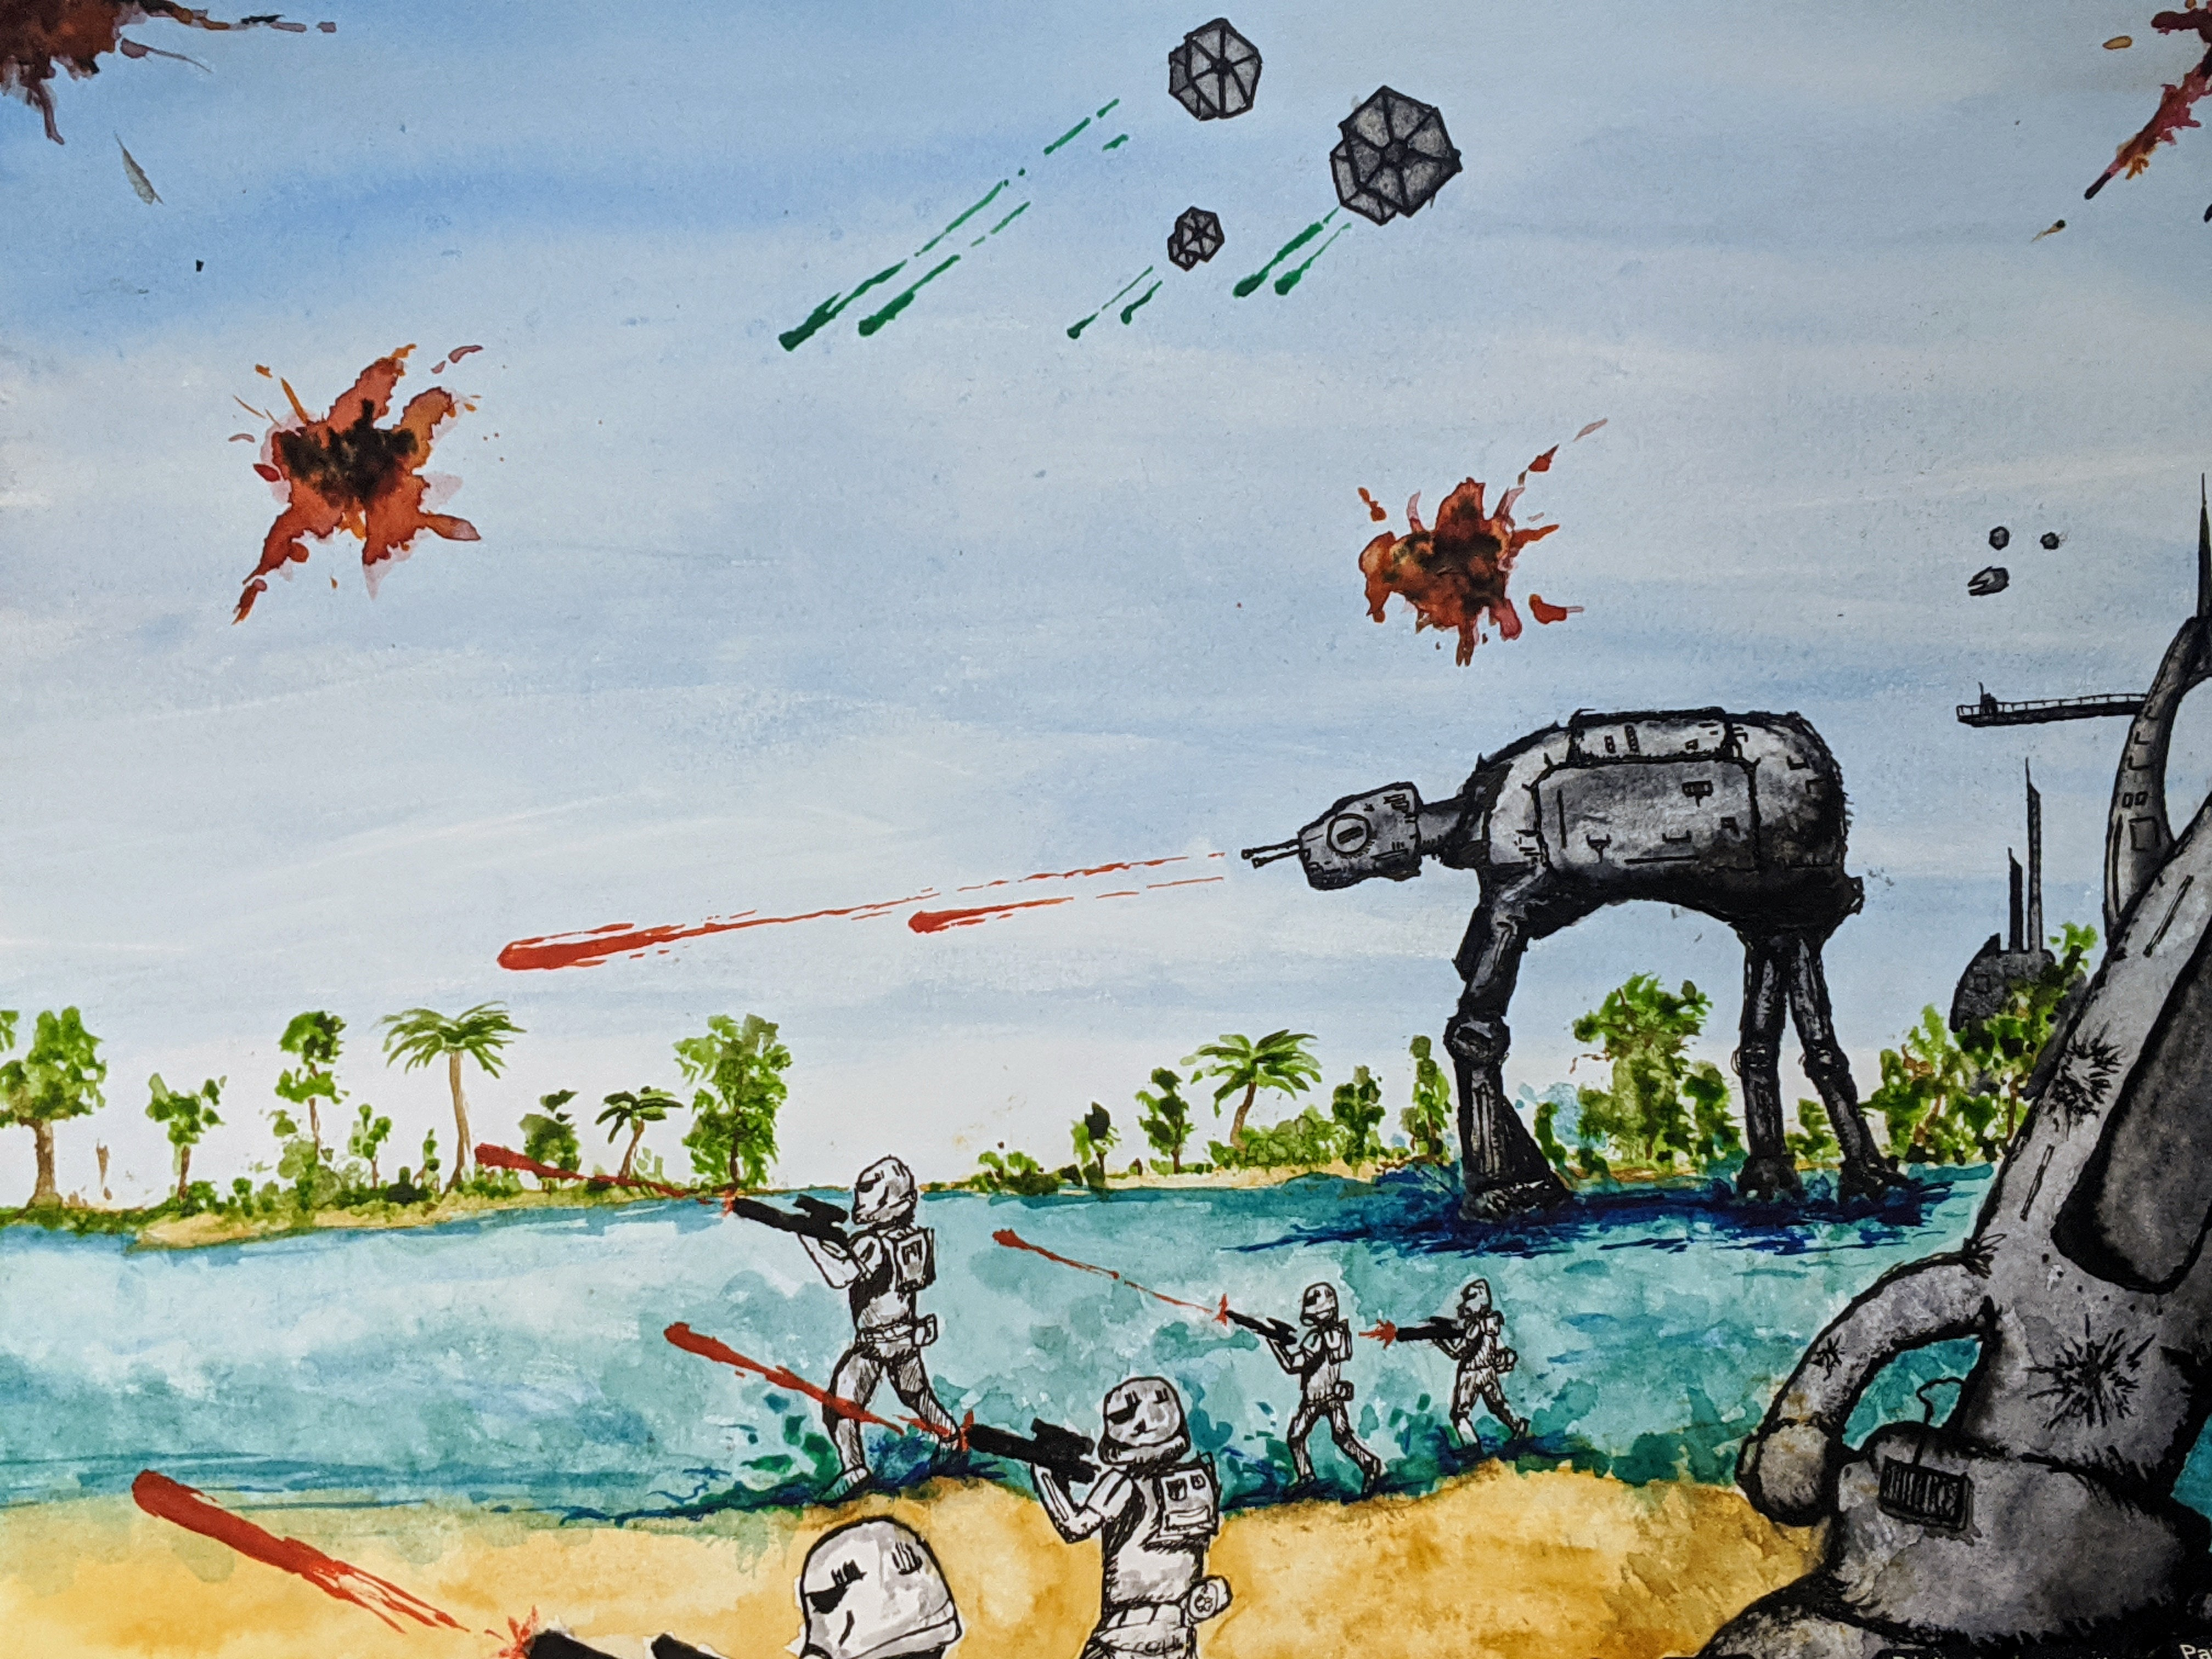 Watercolor painting of the Battle of Scarif